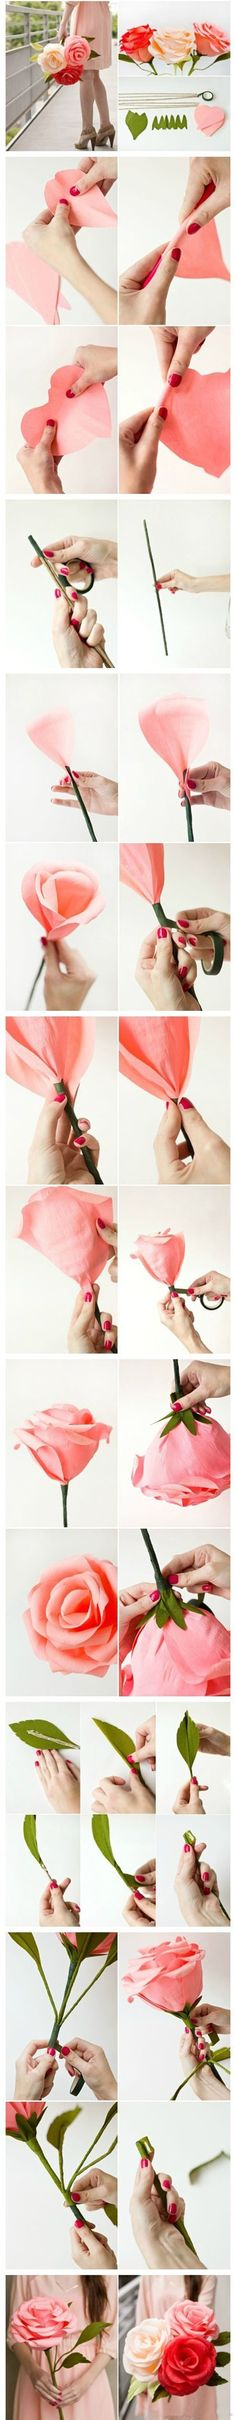 Diy Beautiful Rose | Click to see More DIY & Crafts Tutorials on Our Site.